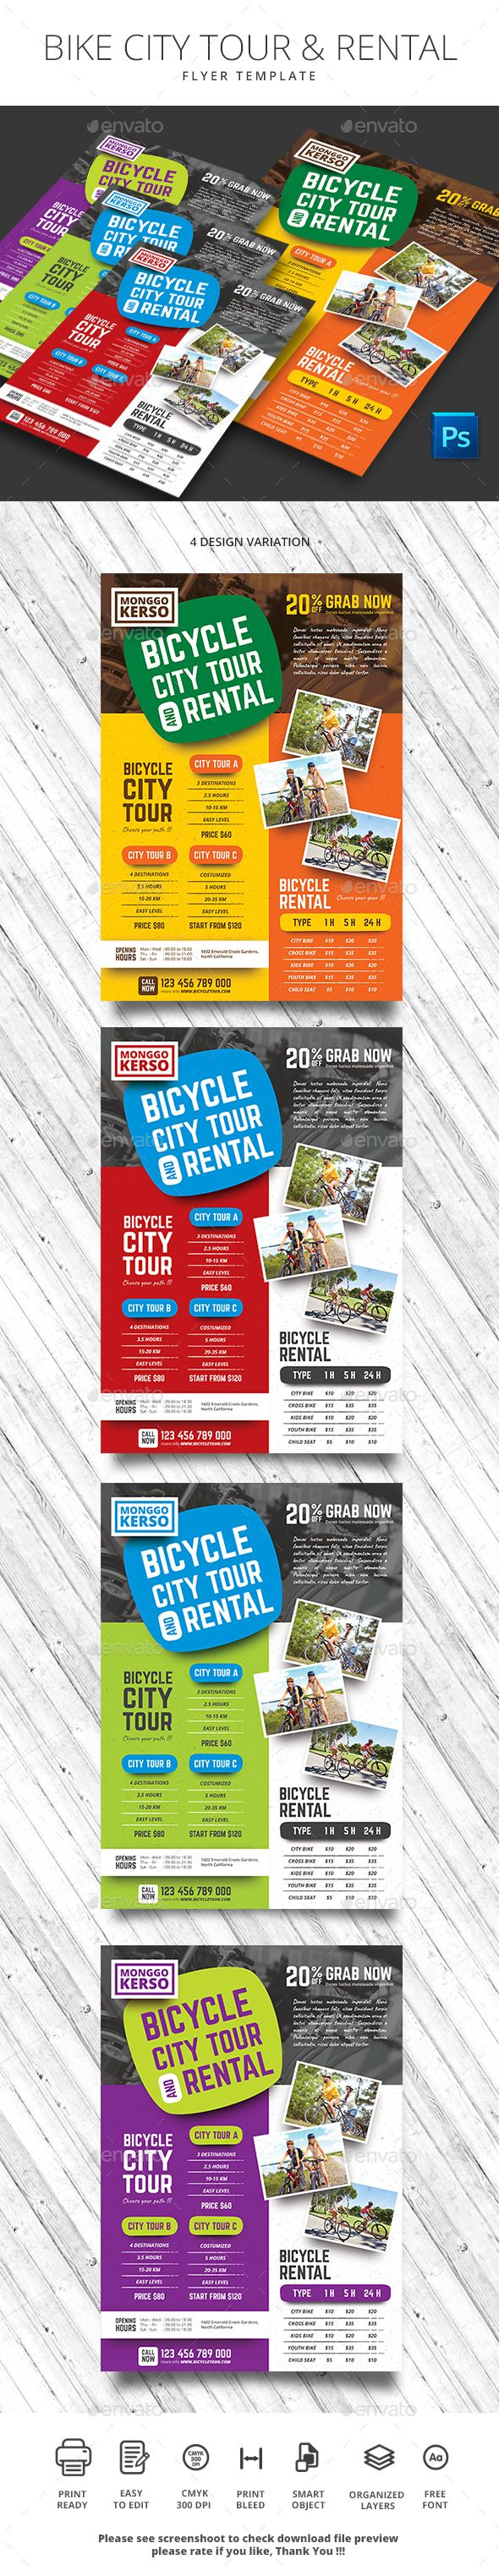 Bike City Tour And Rental Flyer Template Psd Flyer Templates